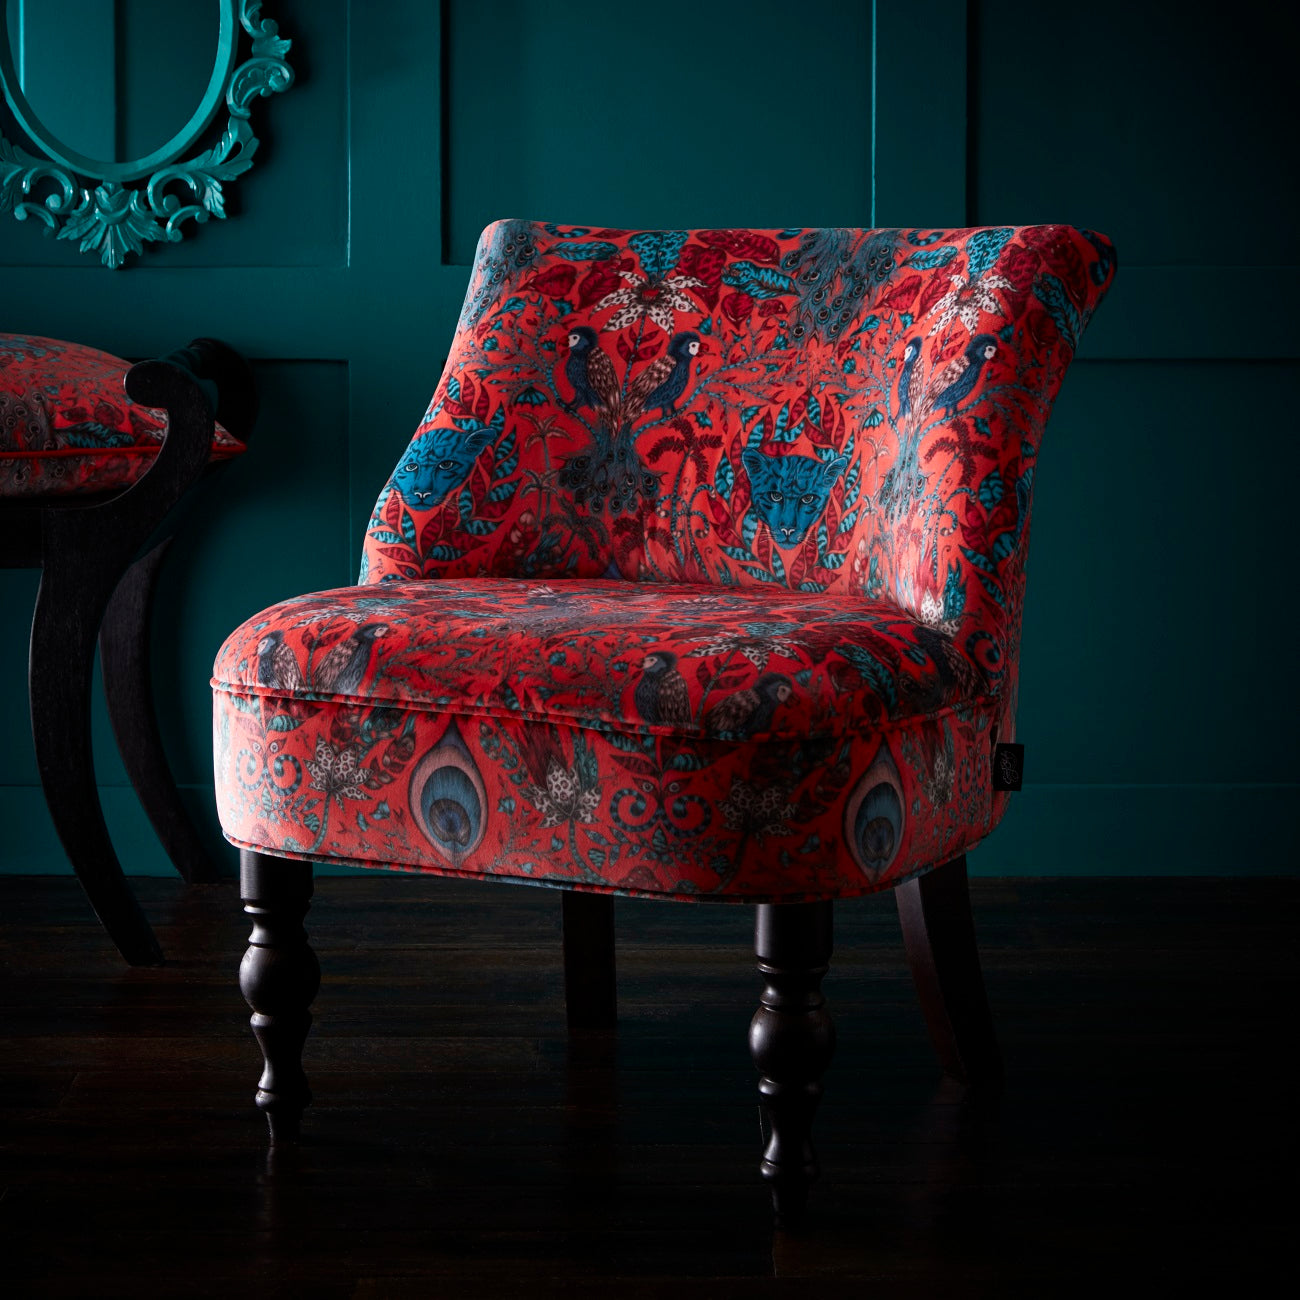 Amozon Accent Chairs.Emma Shipley Langley Amazon Red Designer Accent Chair